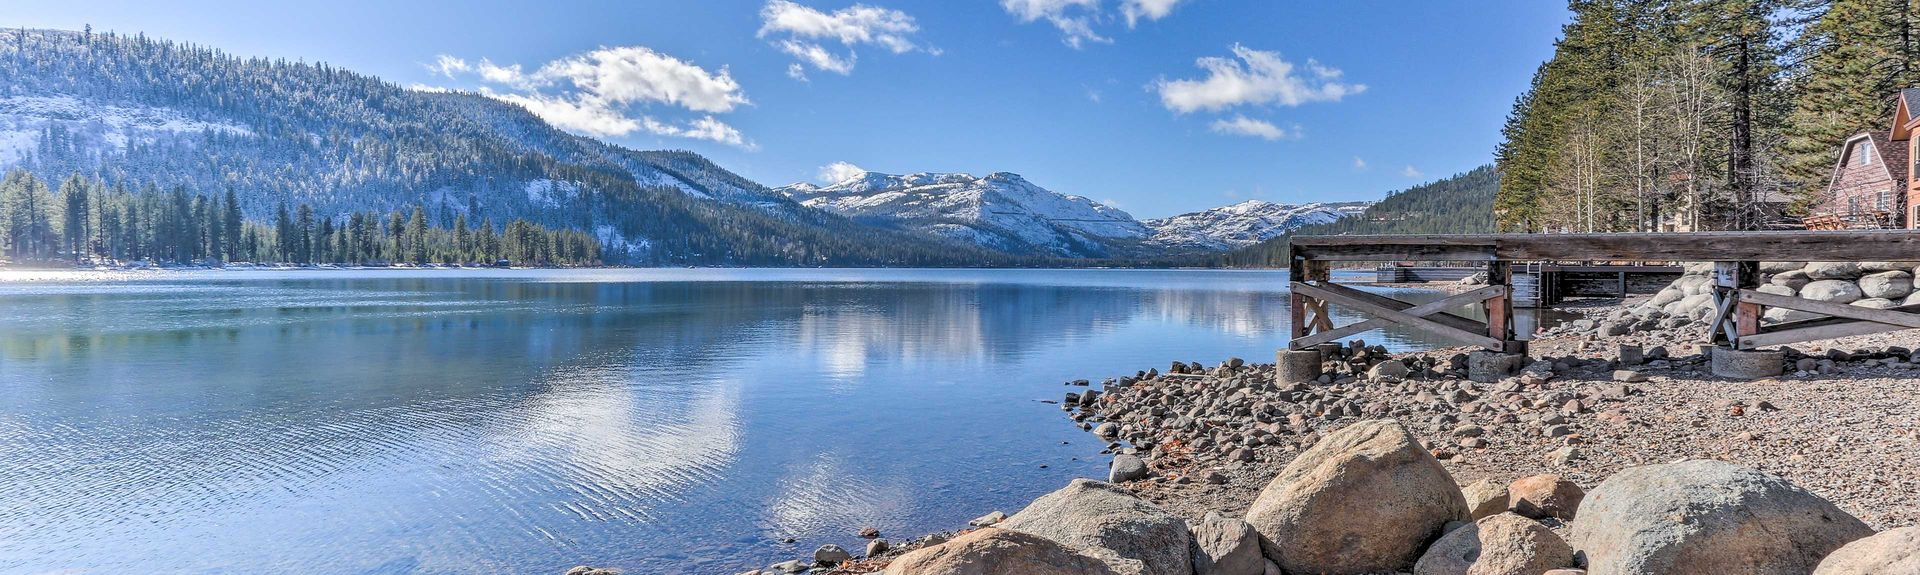 Truckee, California, United States